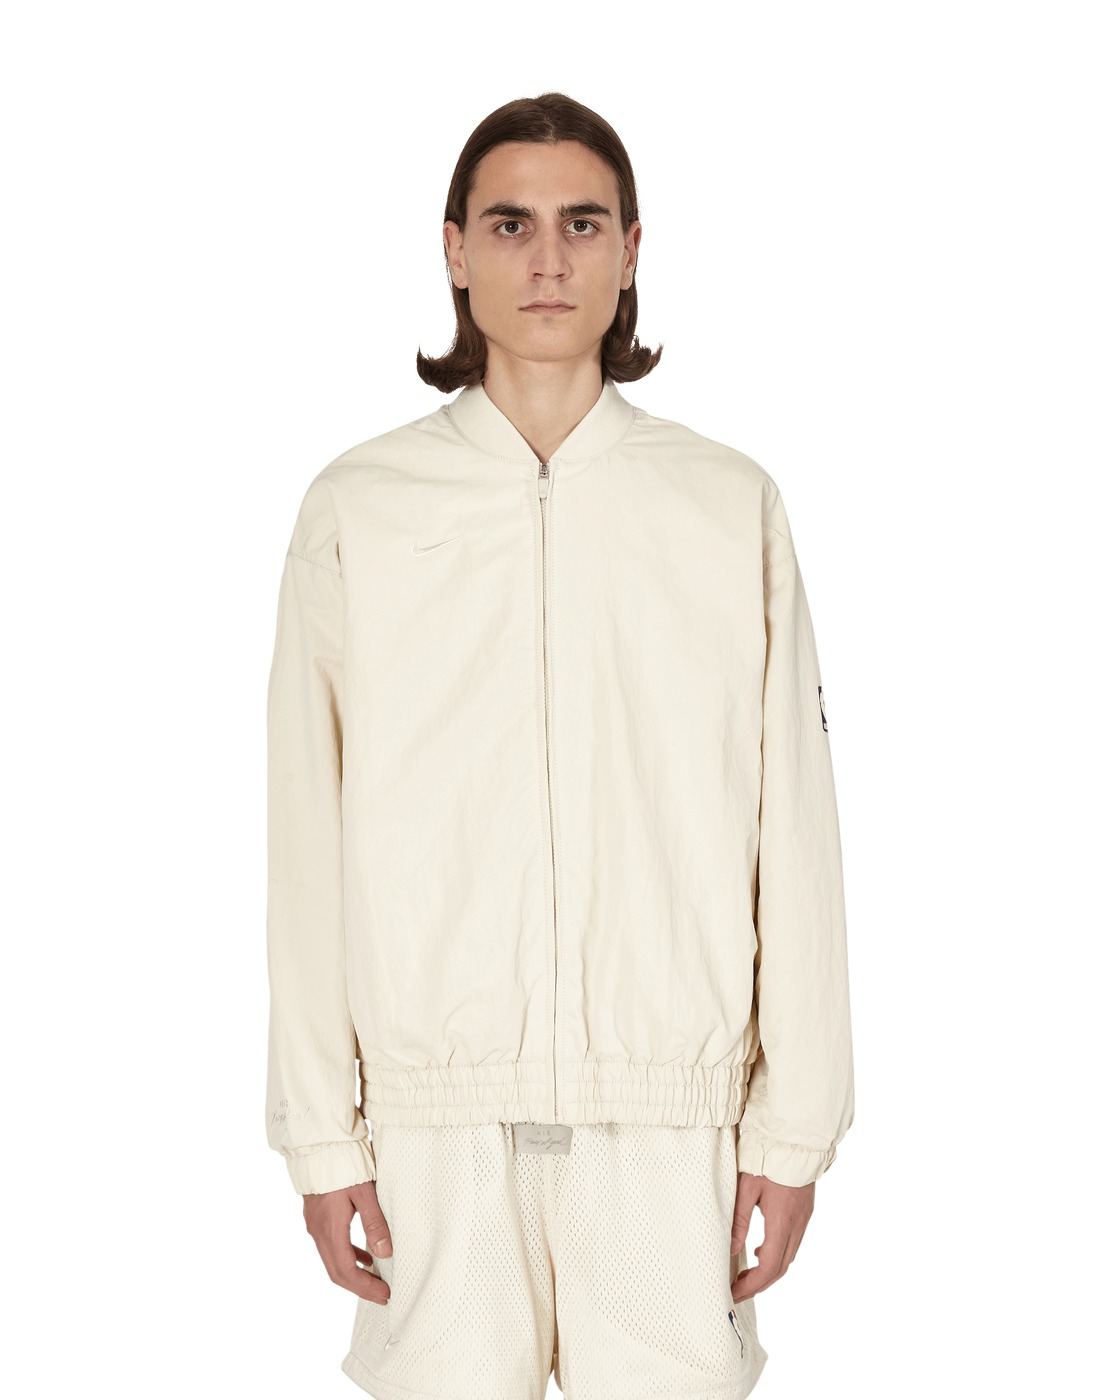 Photo: Nike Special Project Jerry Lorenzo Basketball Jacket Light Cream